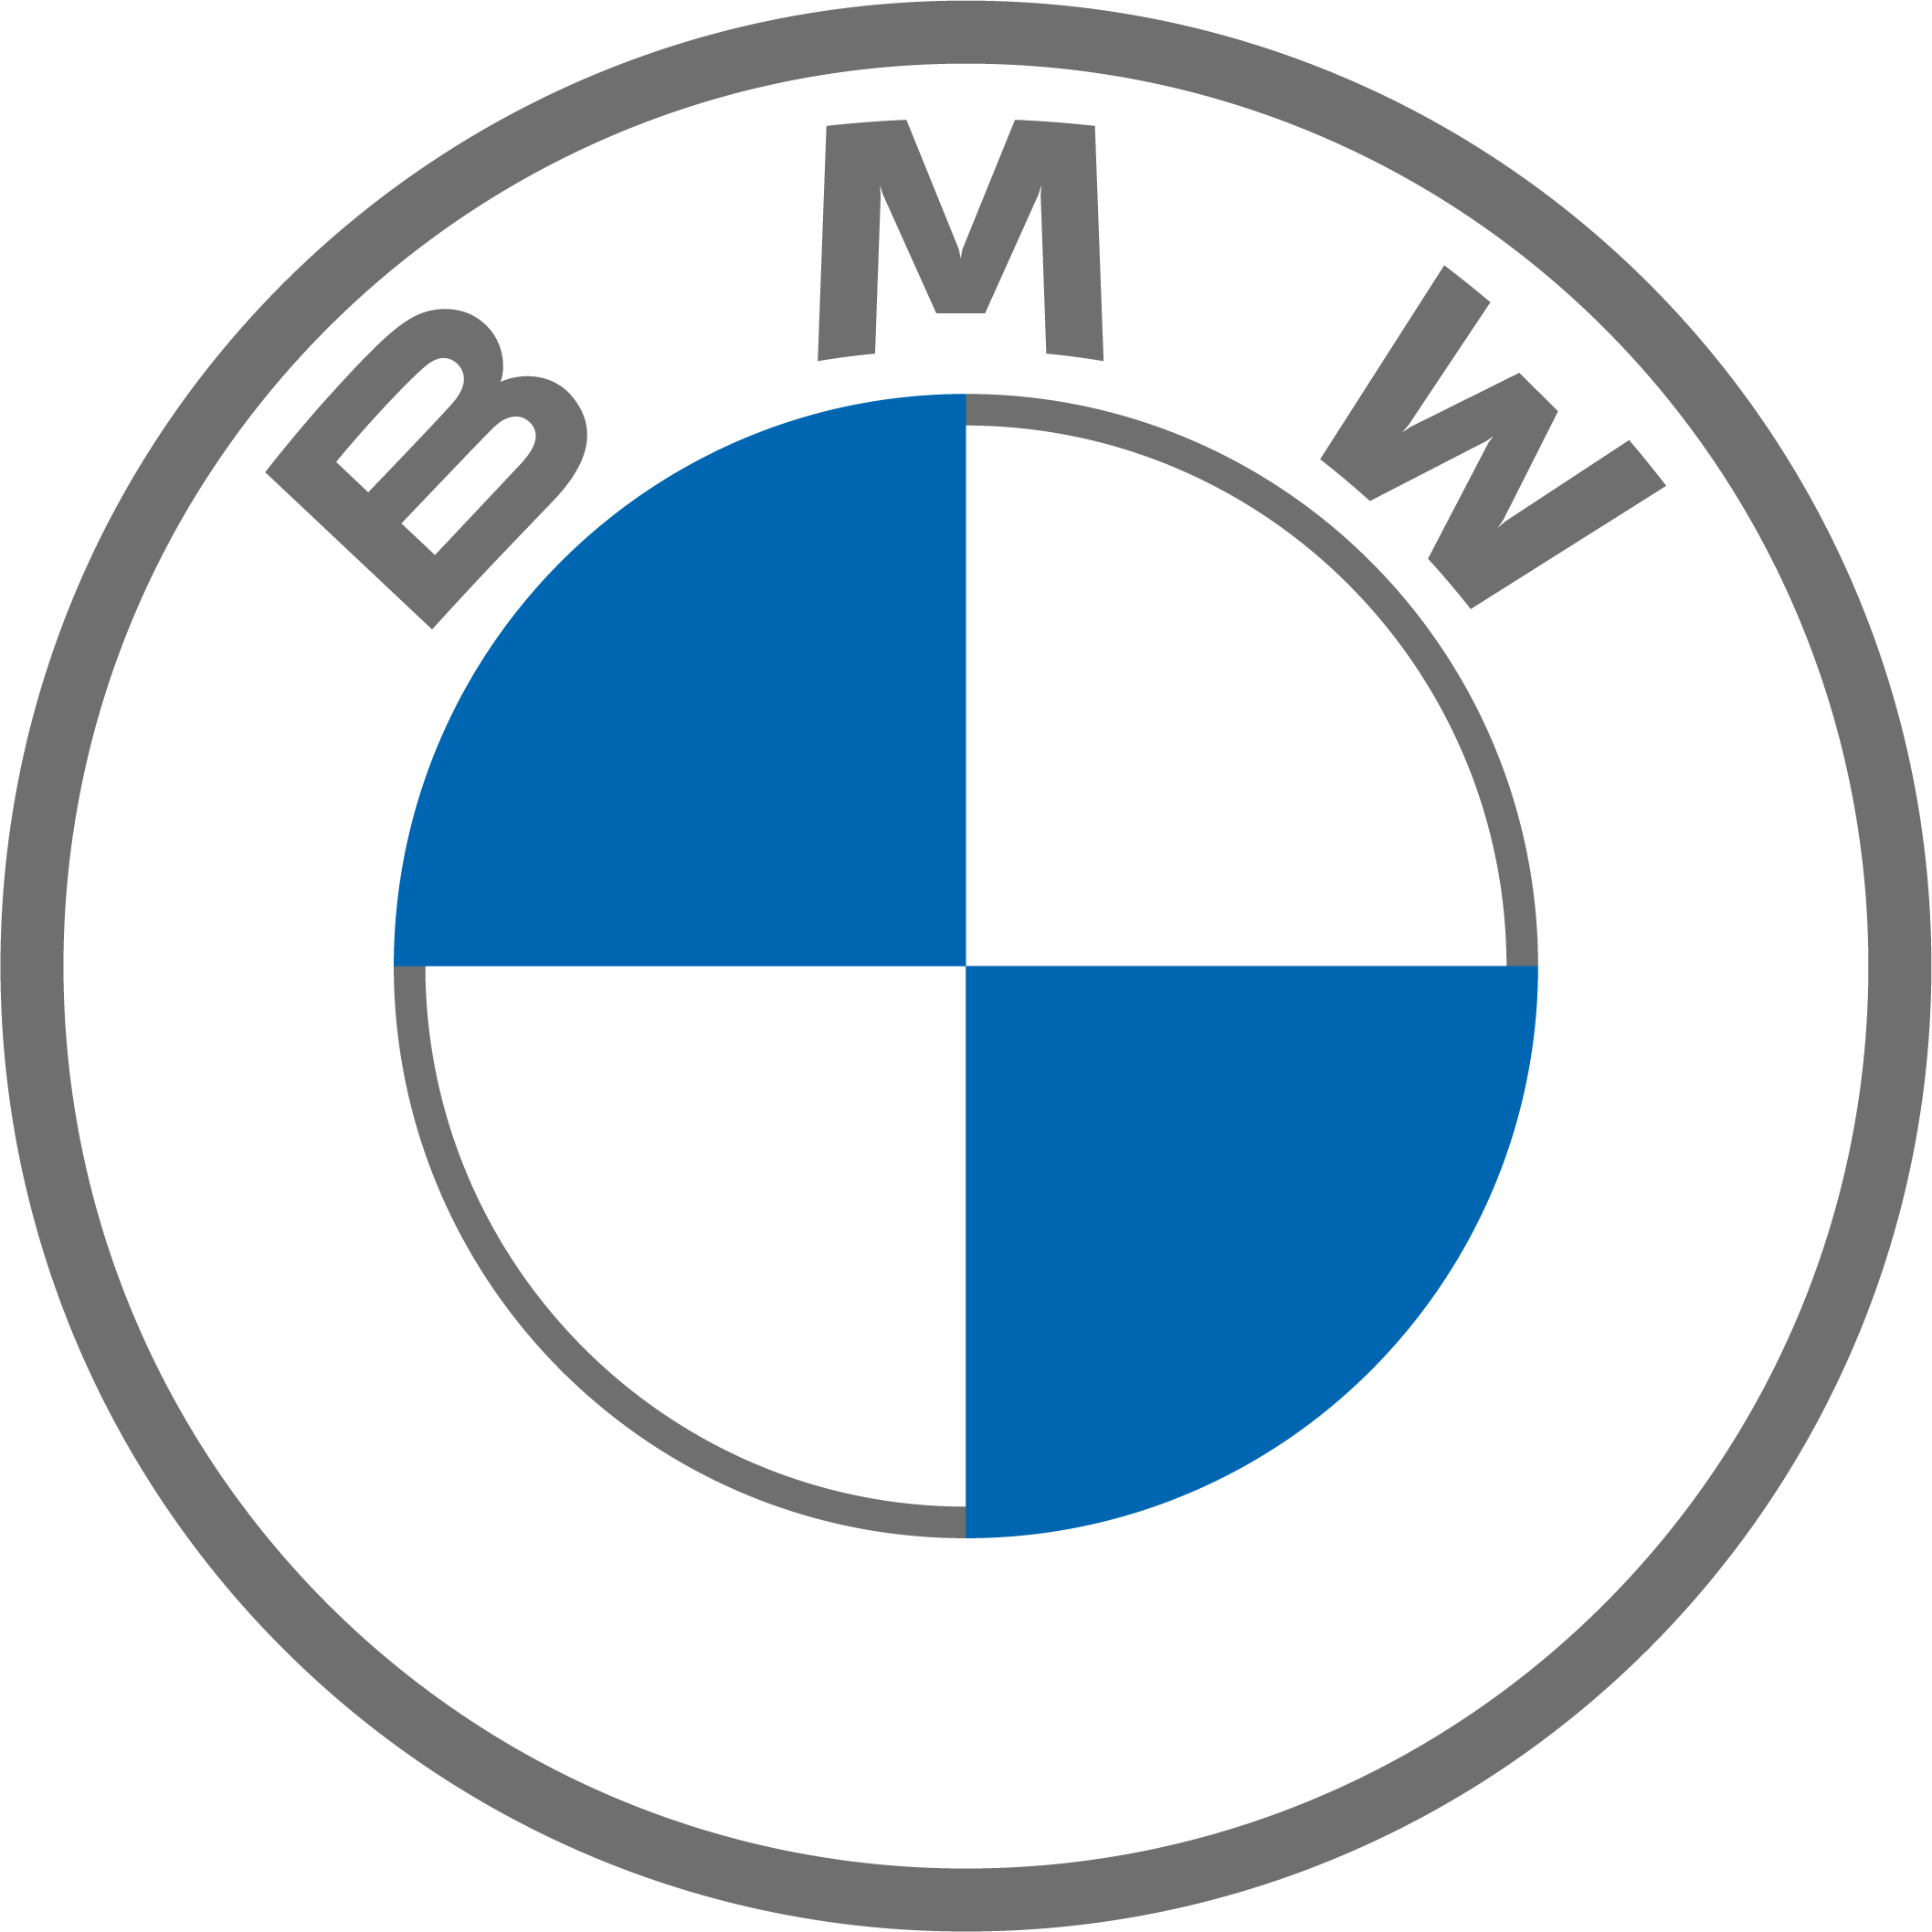 BMW: An employee engagement program to foster purpose